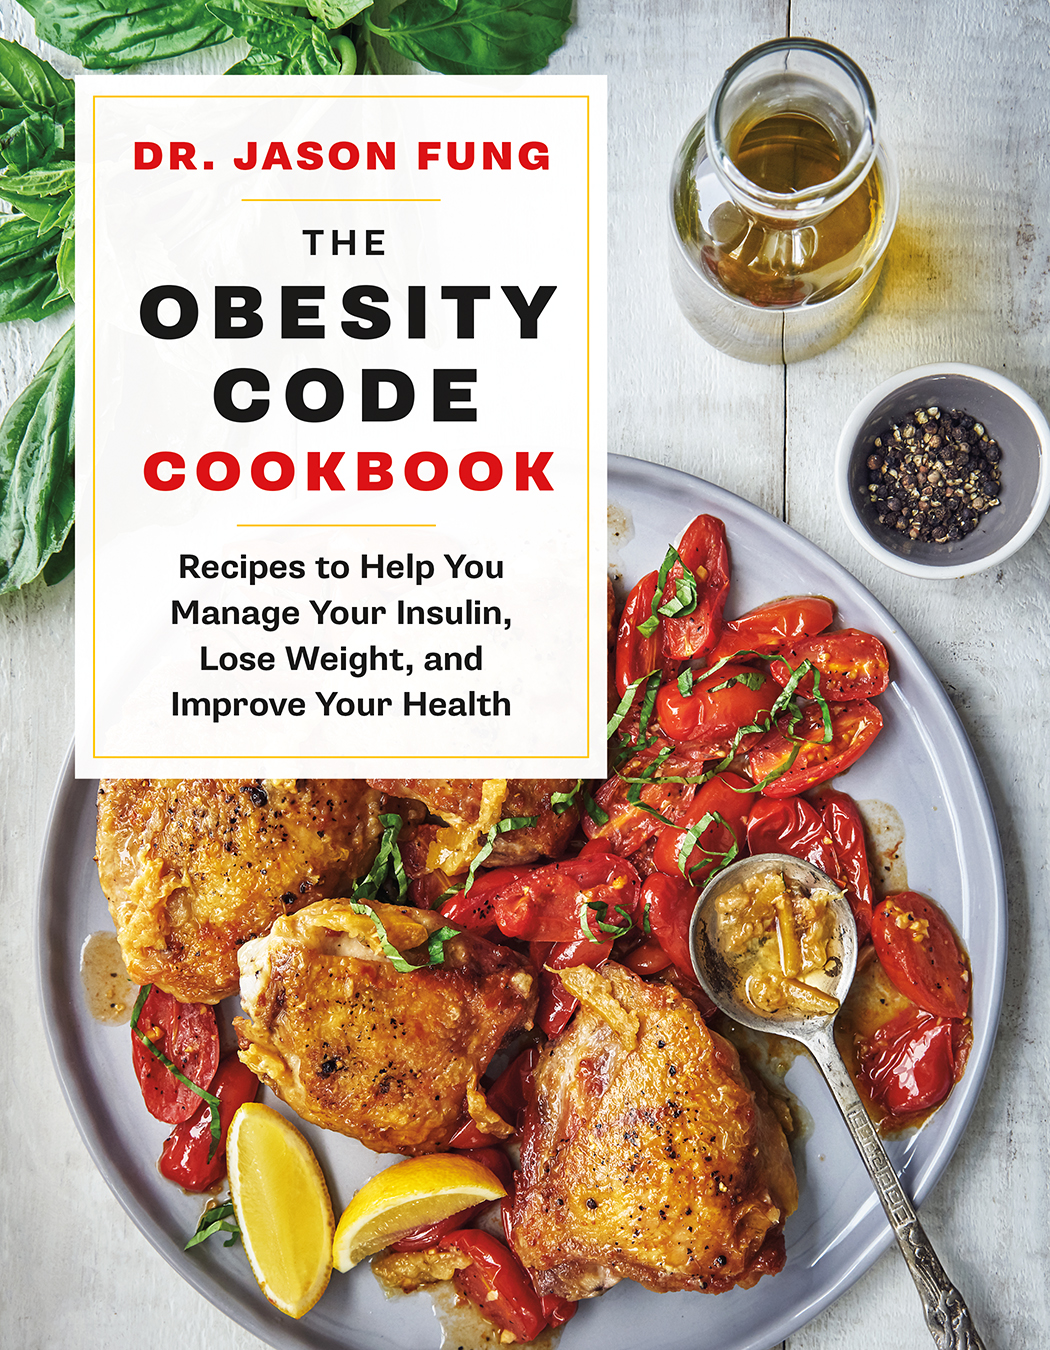 The Obesity Code Cookbook : Recipes to Help You Manage Insulin, Lose Weight, and Improve Your Health | Cookbook